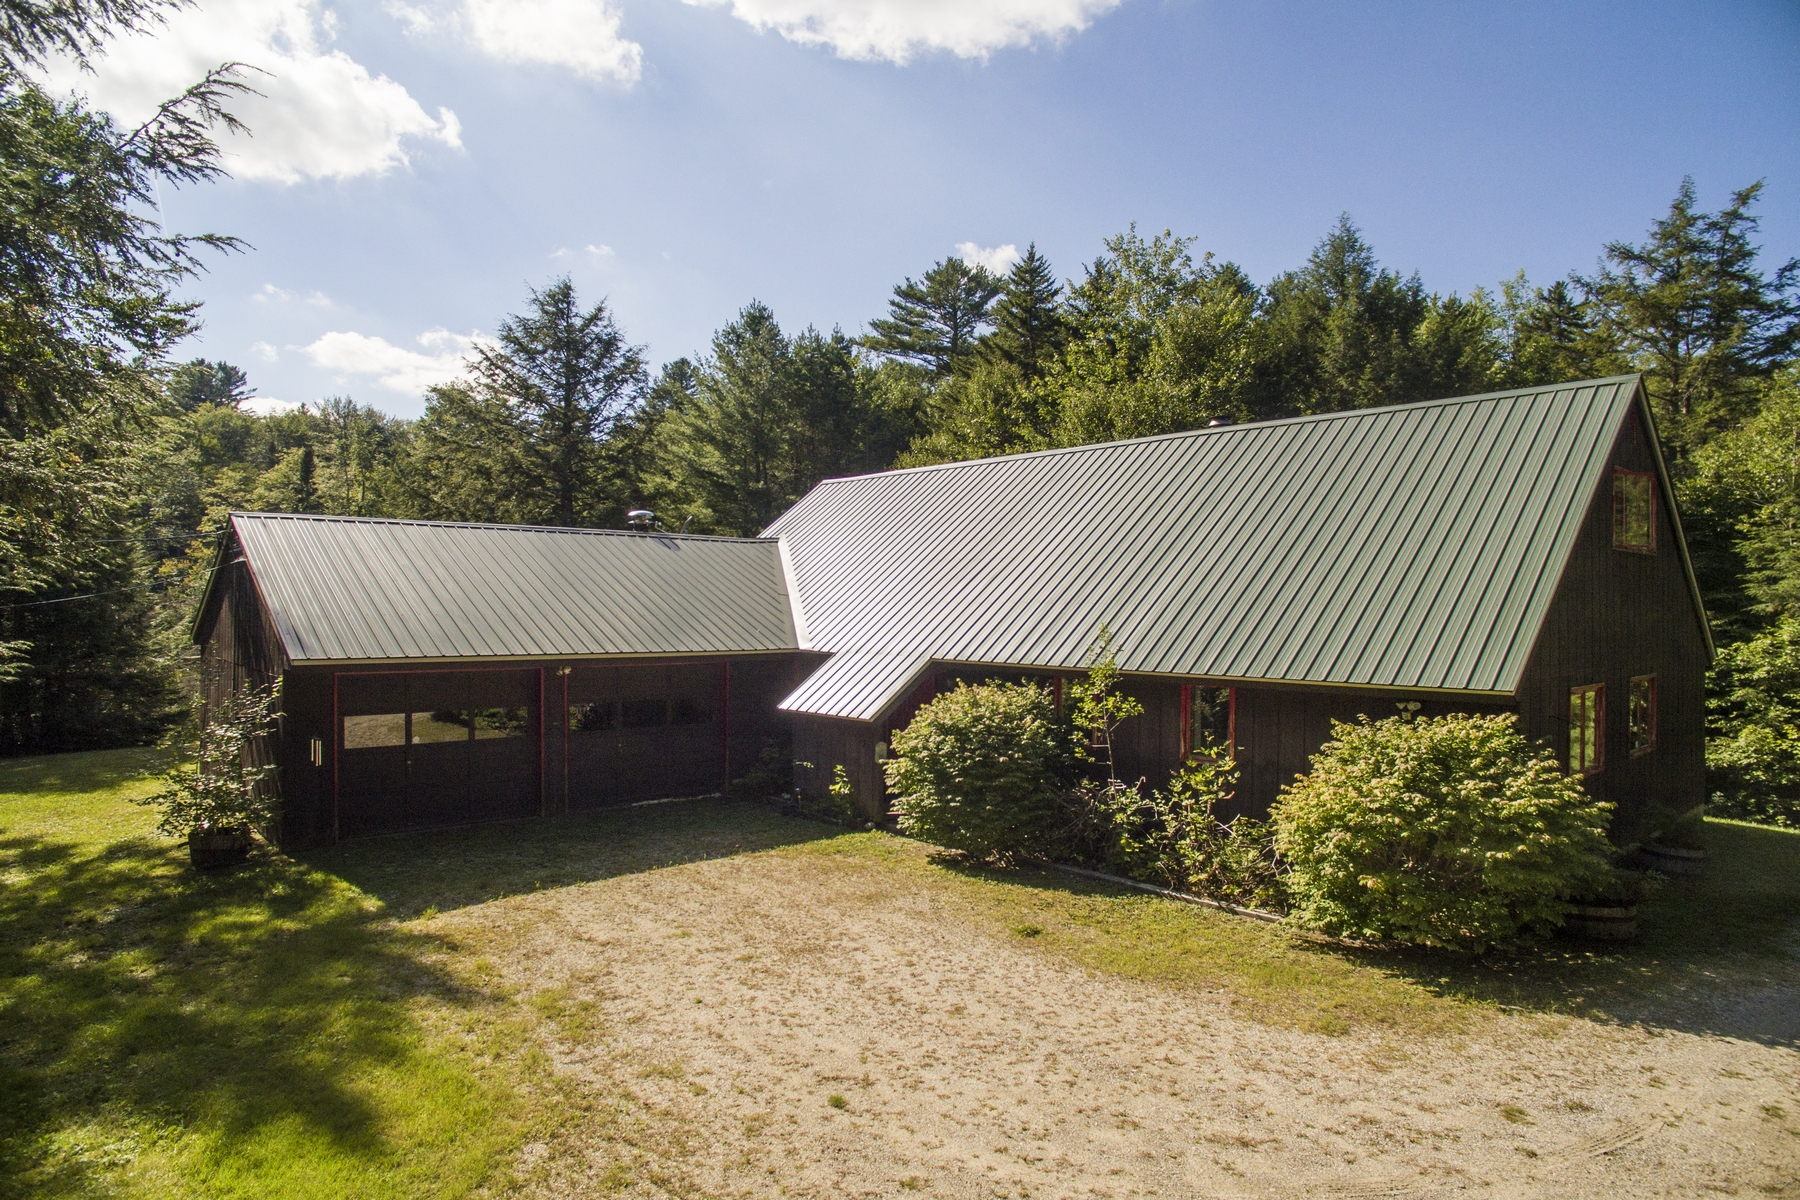 Single Family Home for Sale at 274 Hide And Seek Road, Peru 274 Hide And Seek Rd Peru, Vermont 05152 United States